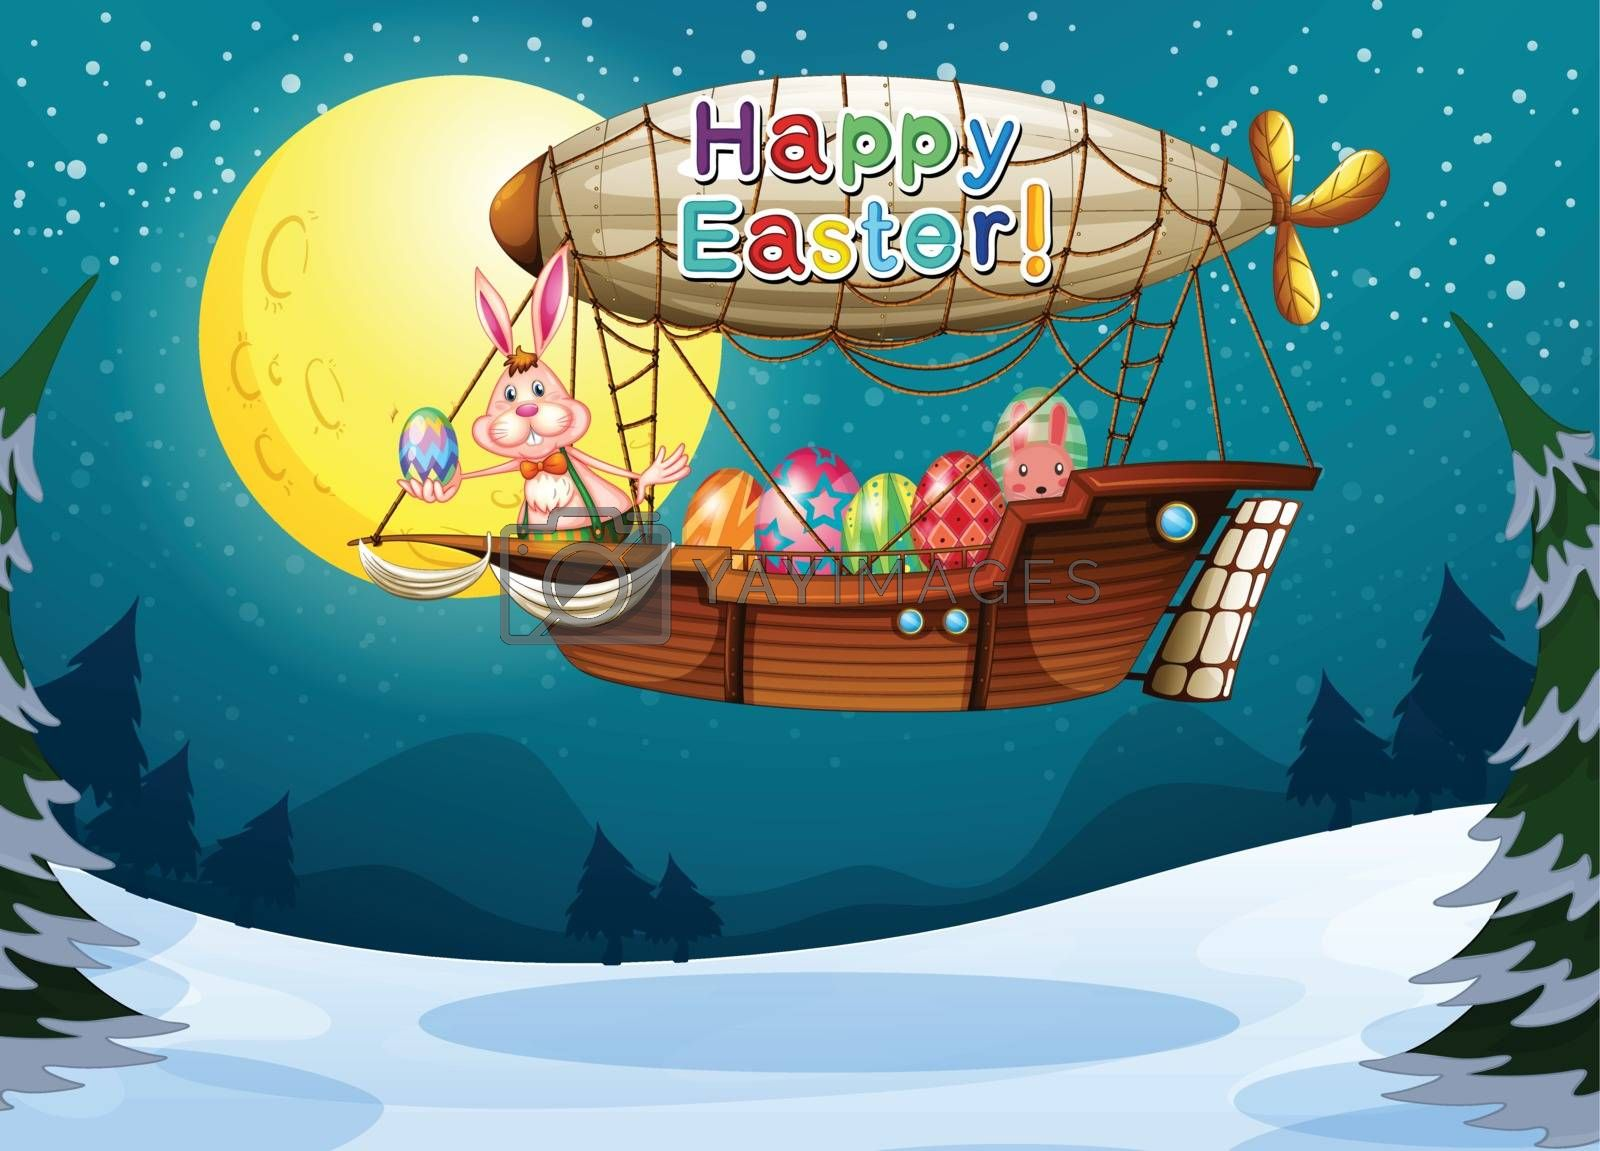 Illustration of a happy easter greeting